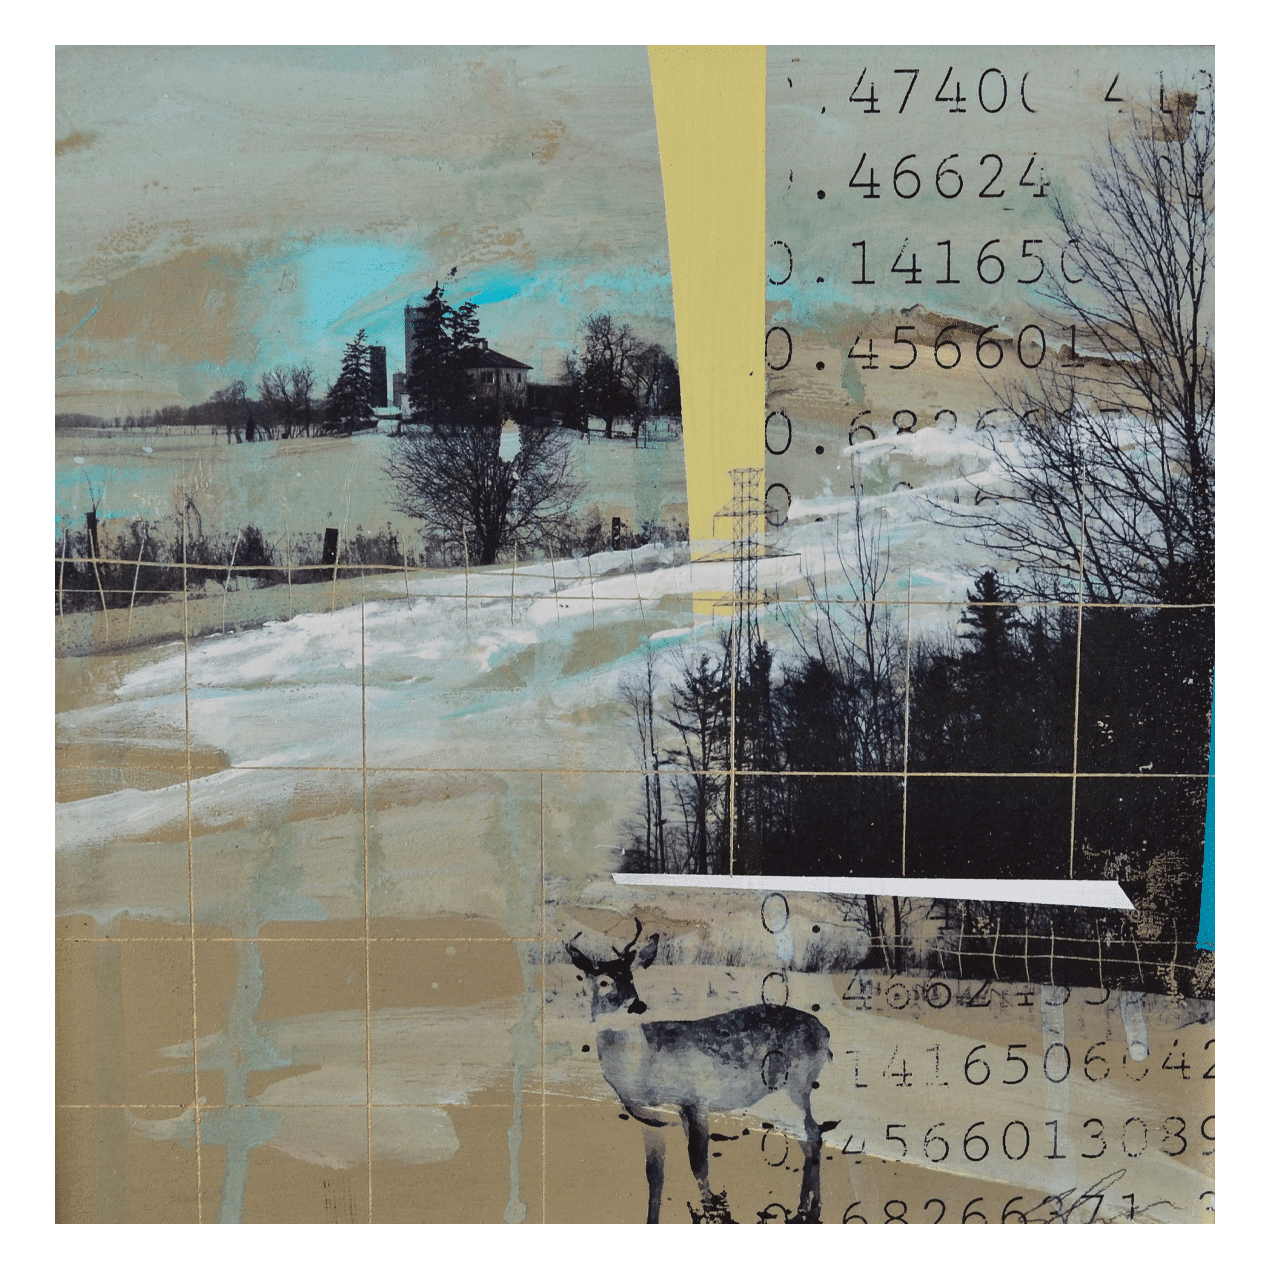 Deer with Landscape and Grid 12 x 12 Mixed Media on Panel (Abstract, Landscape)